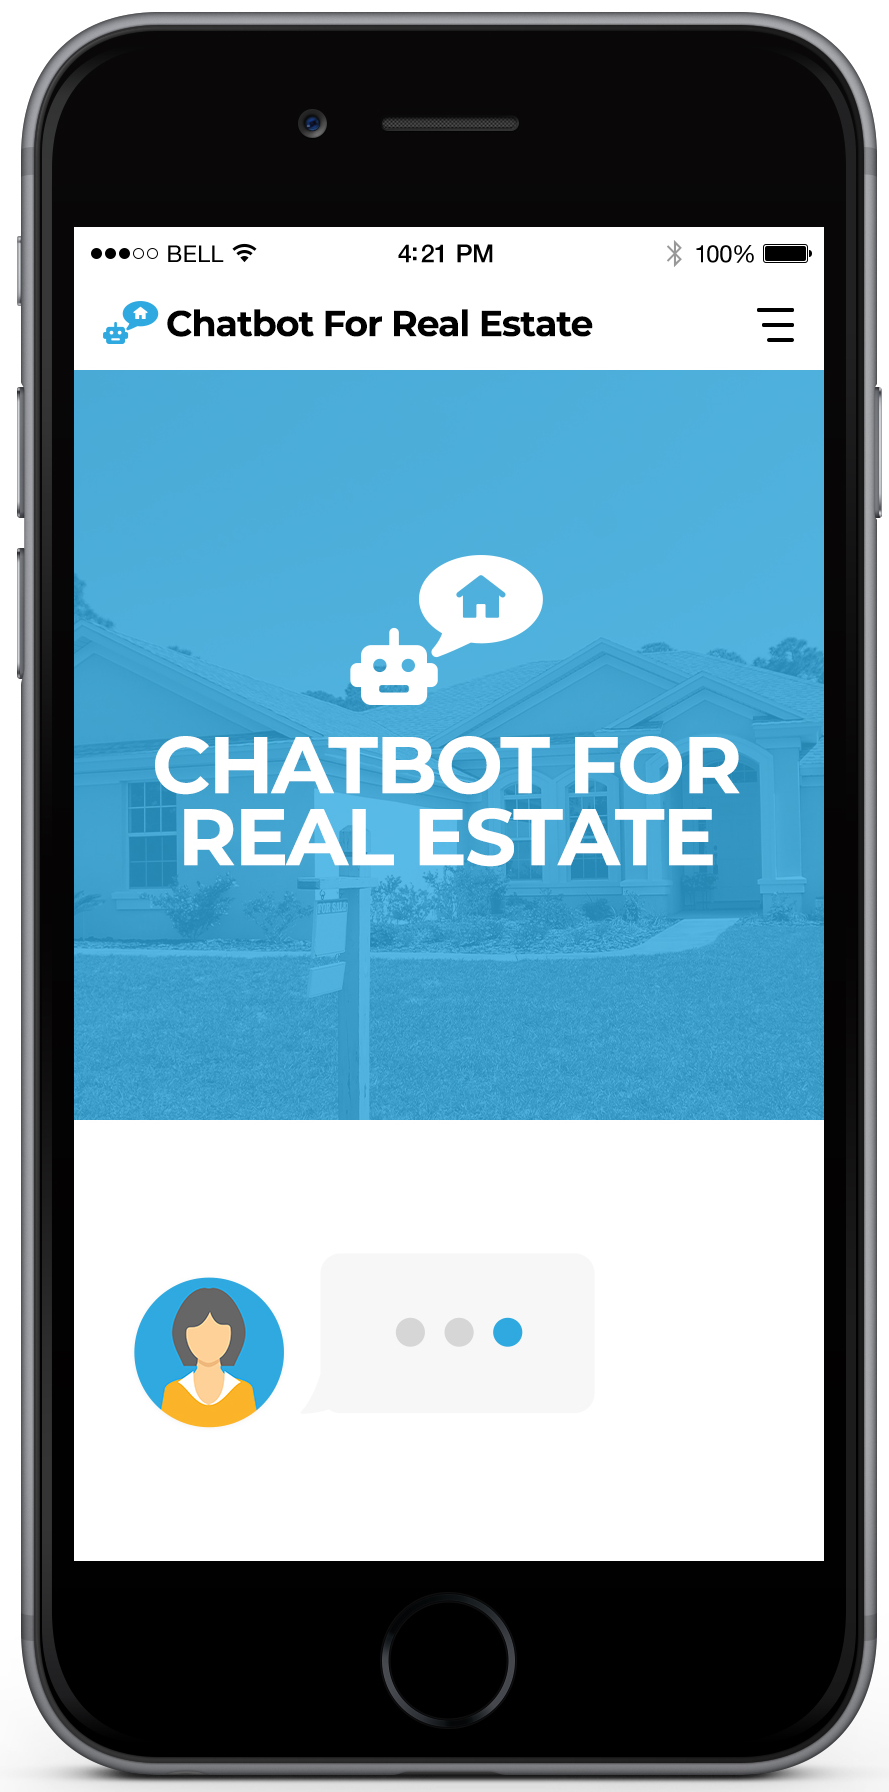 Chatbot For Real Estate